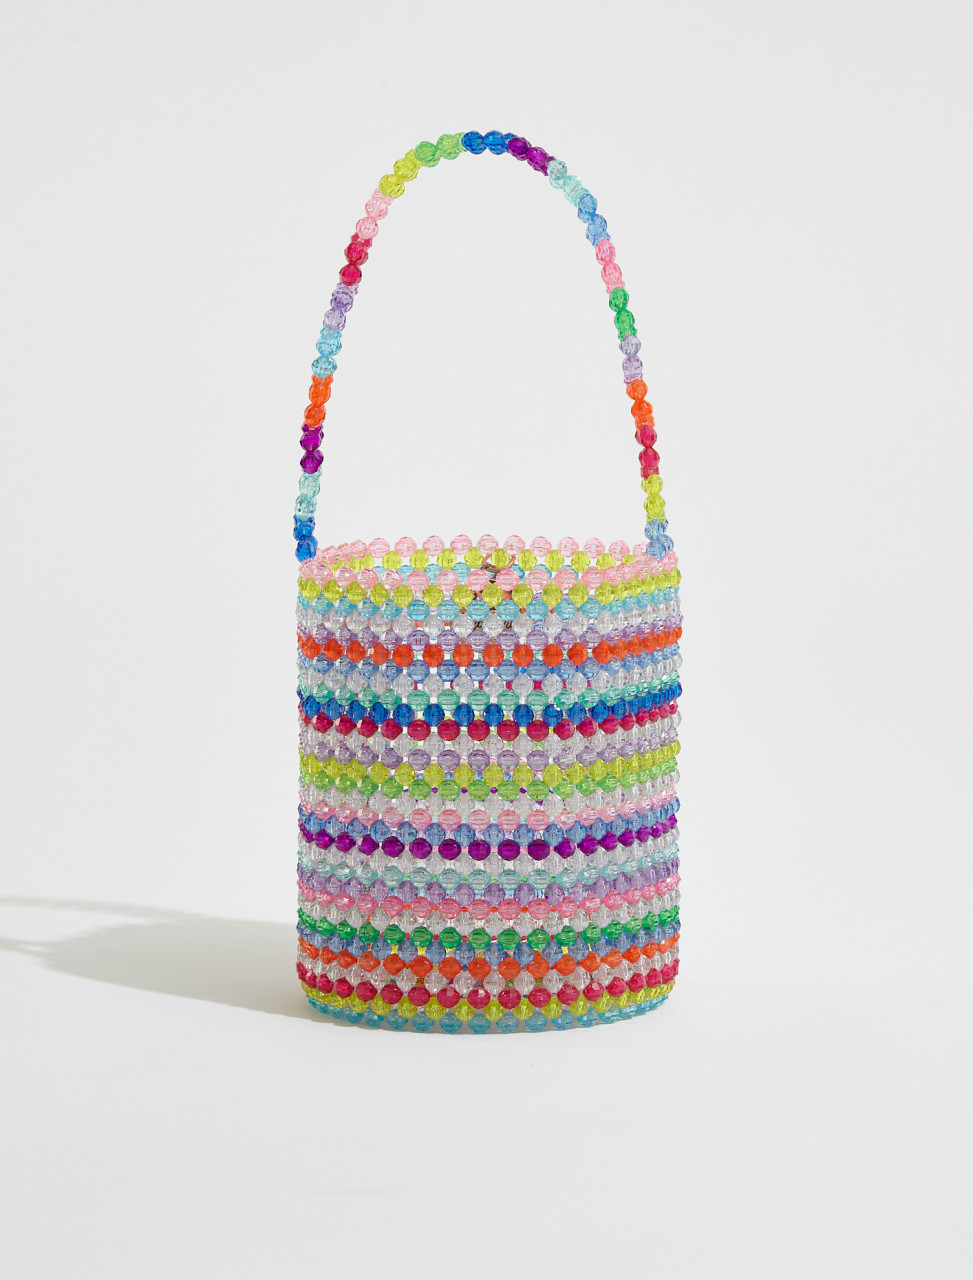 310-BAG-0068 SUSAN ALEXANDRA MERRY BUCKET BAG MULTI